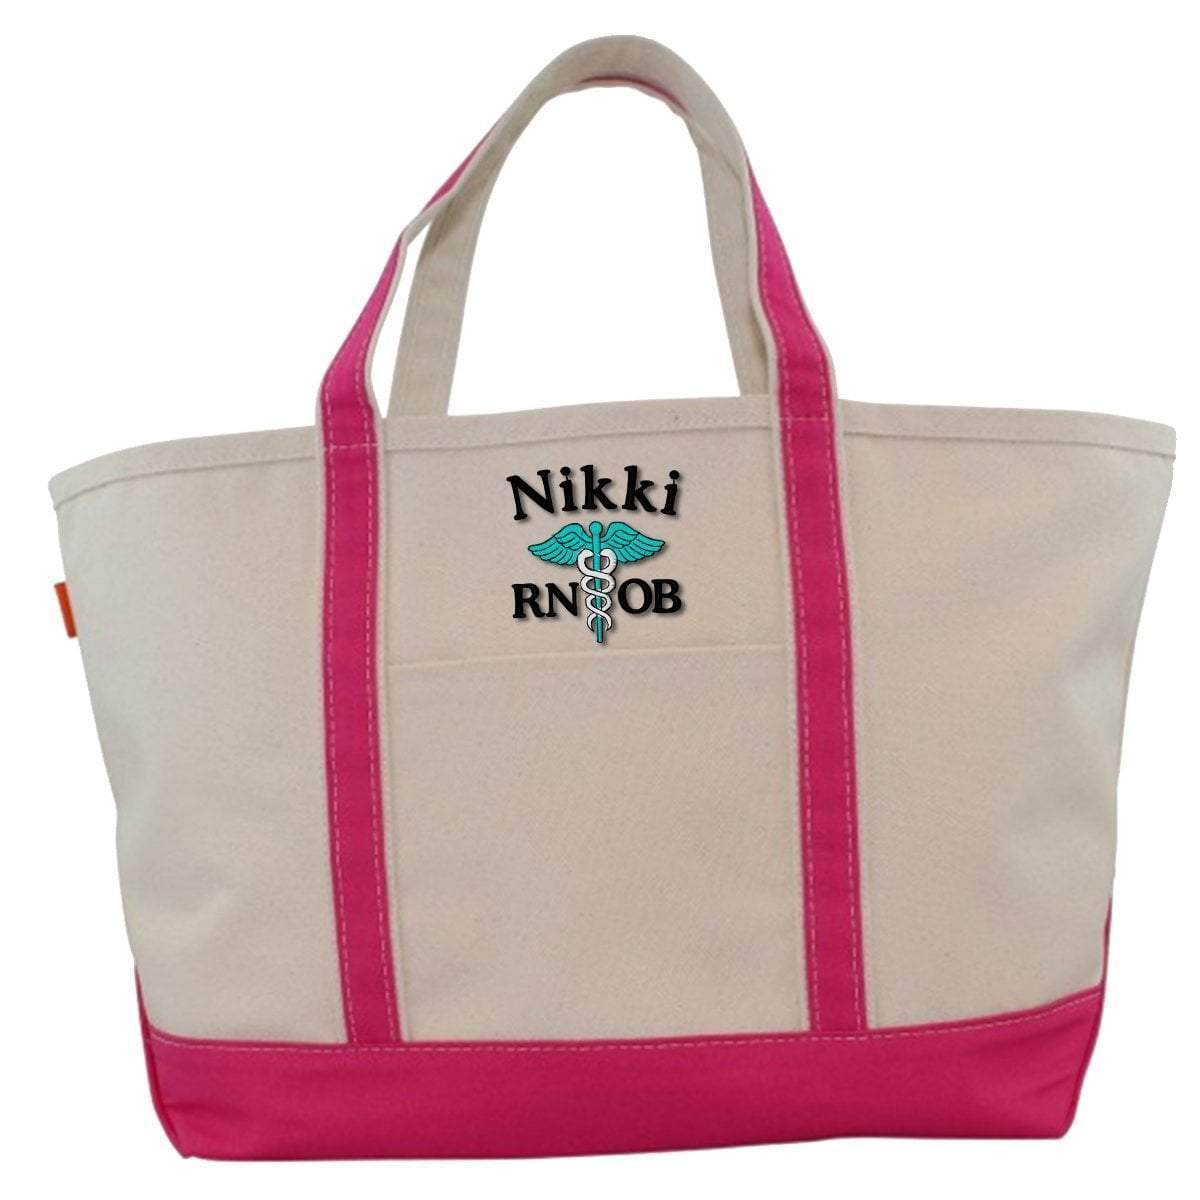 CB Station Bags Large Tote / Hot Pink 5020 | Customized Boat Tote from CB Station